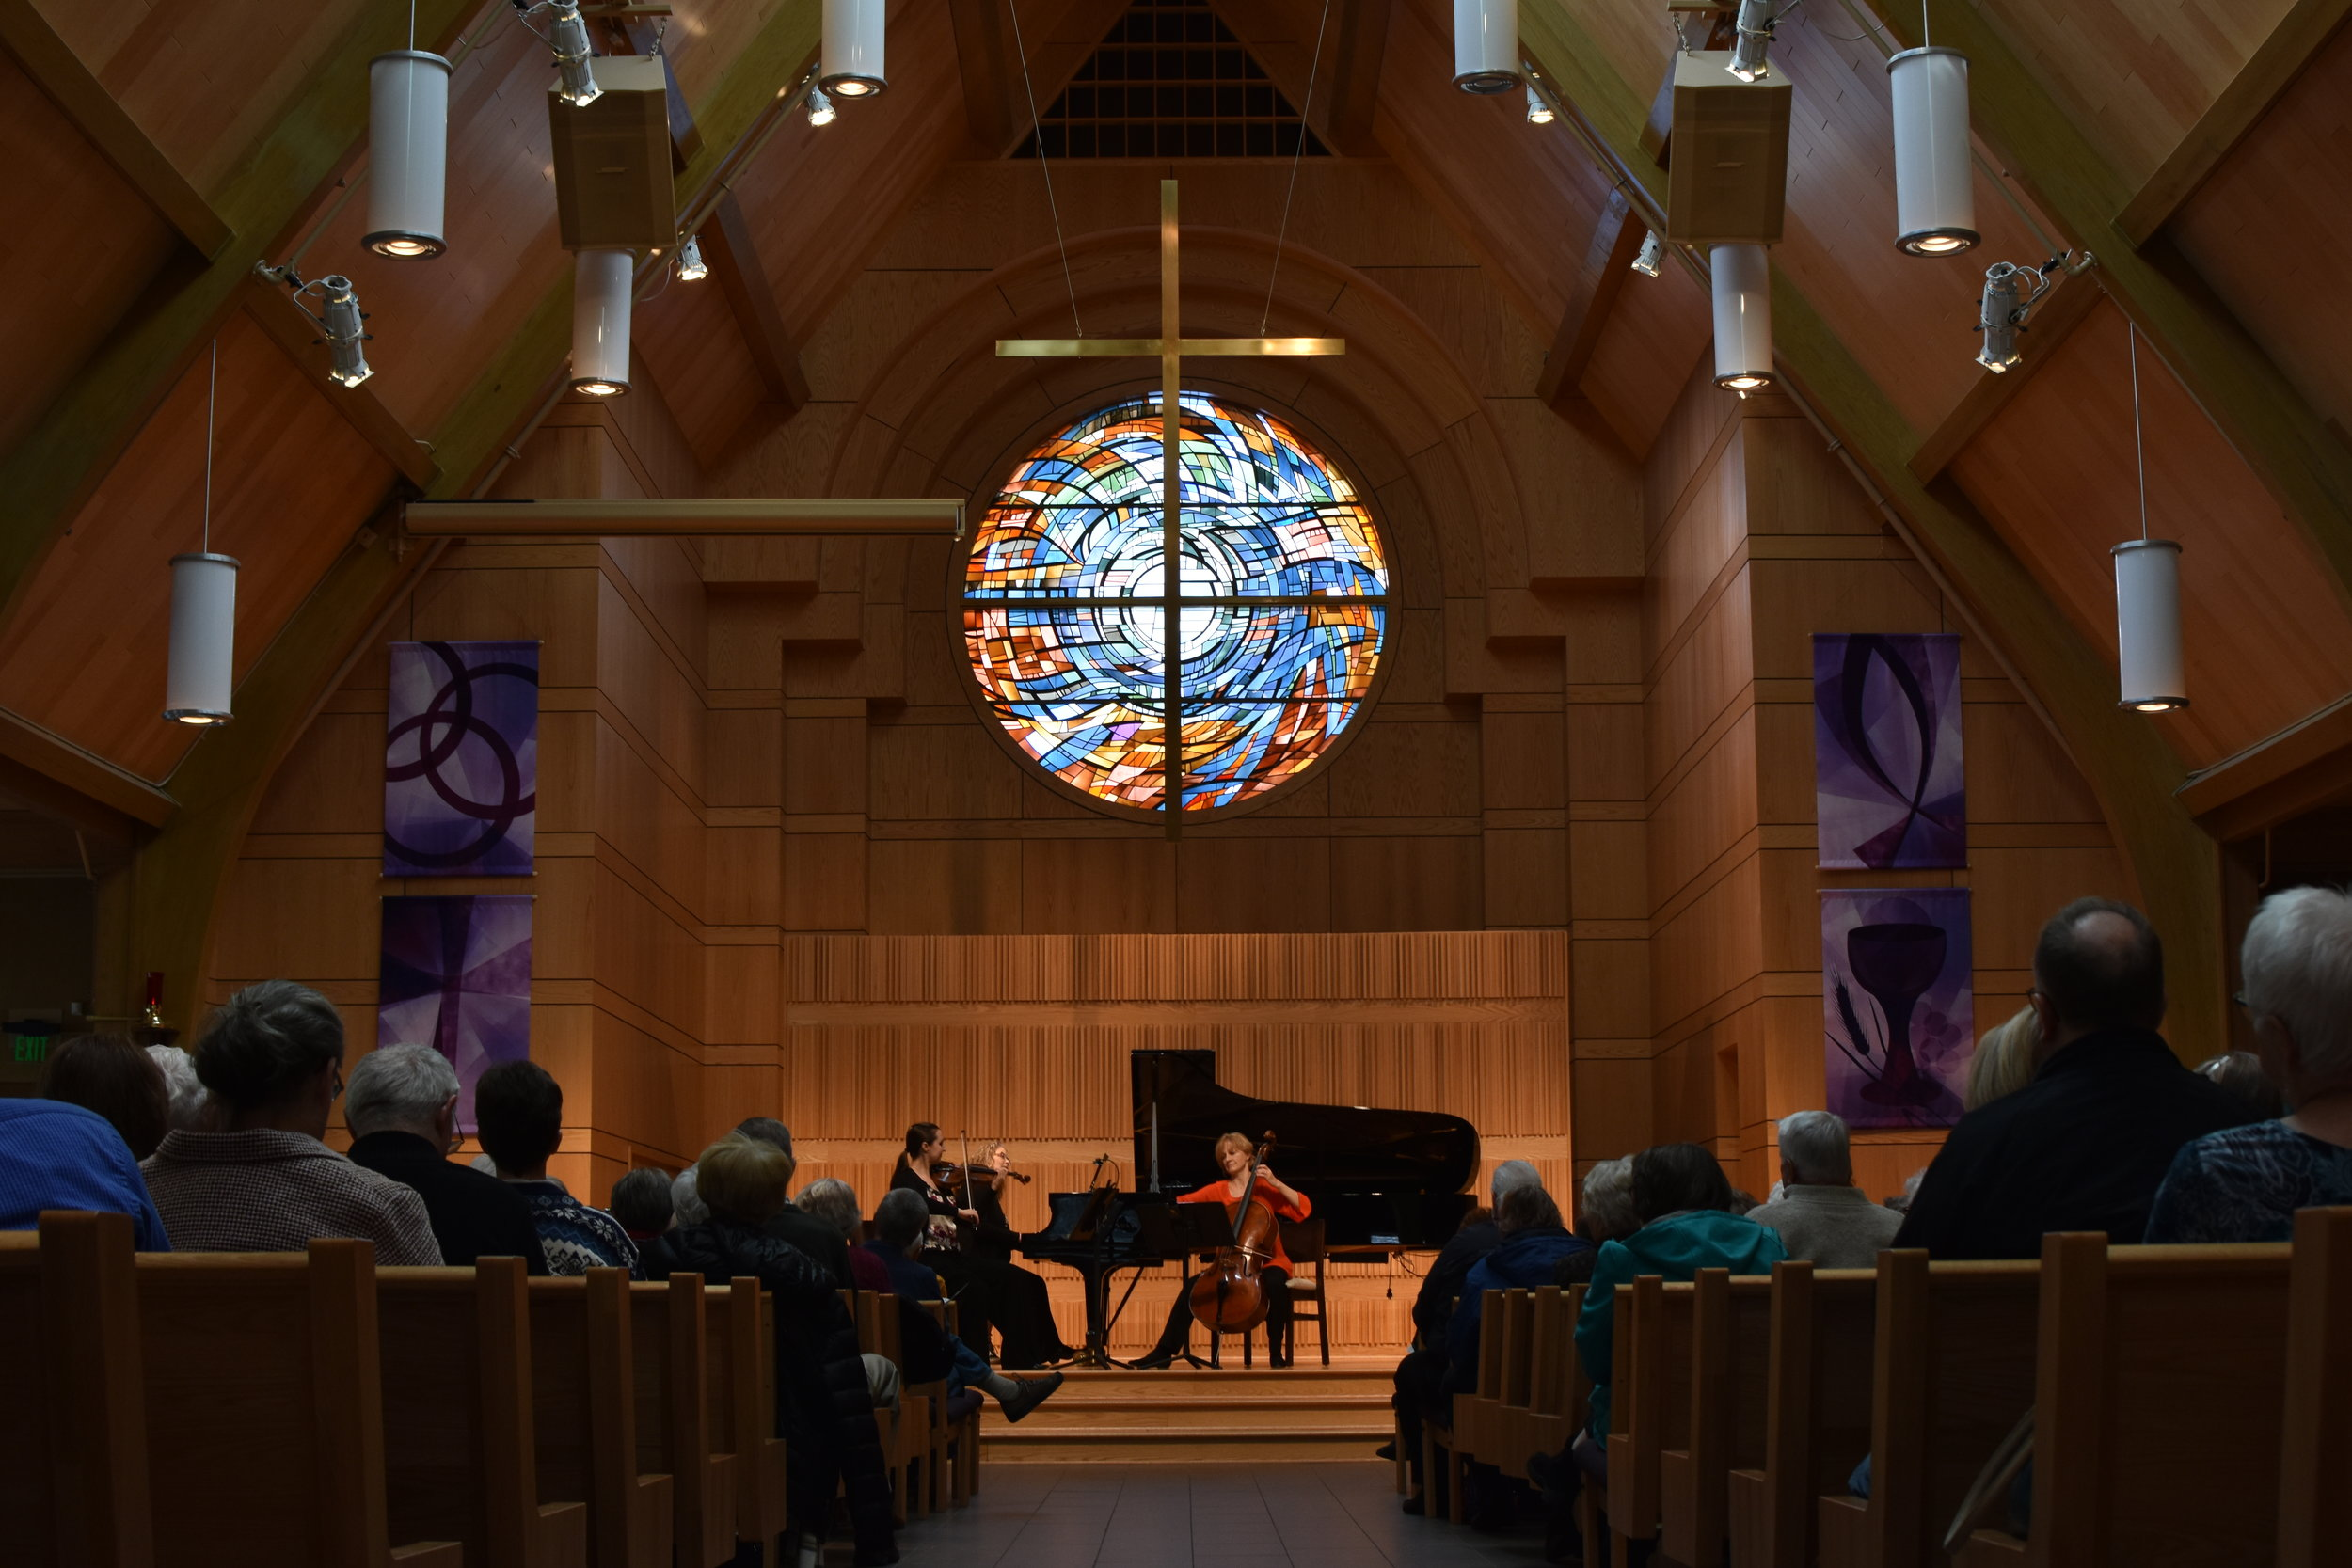 joya-chamber-music-performance_center-aisle.JPG